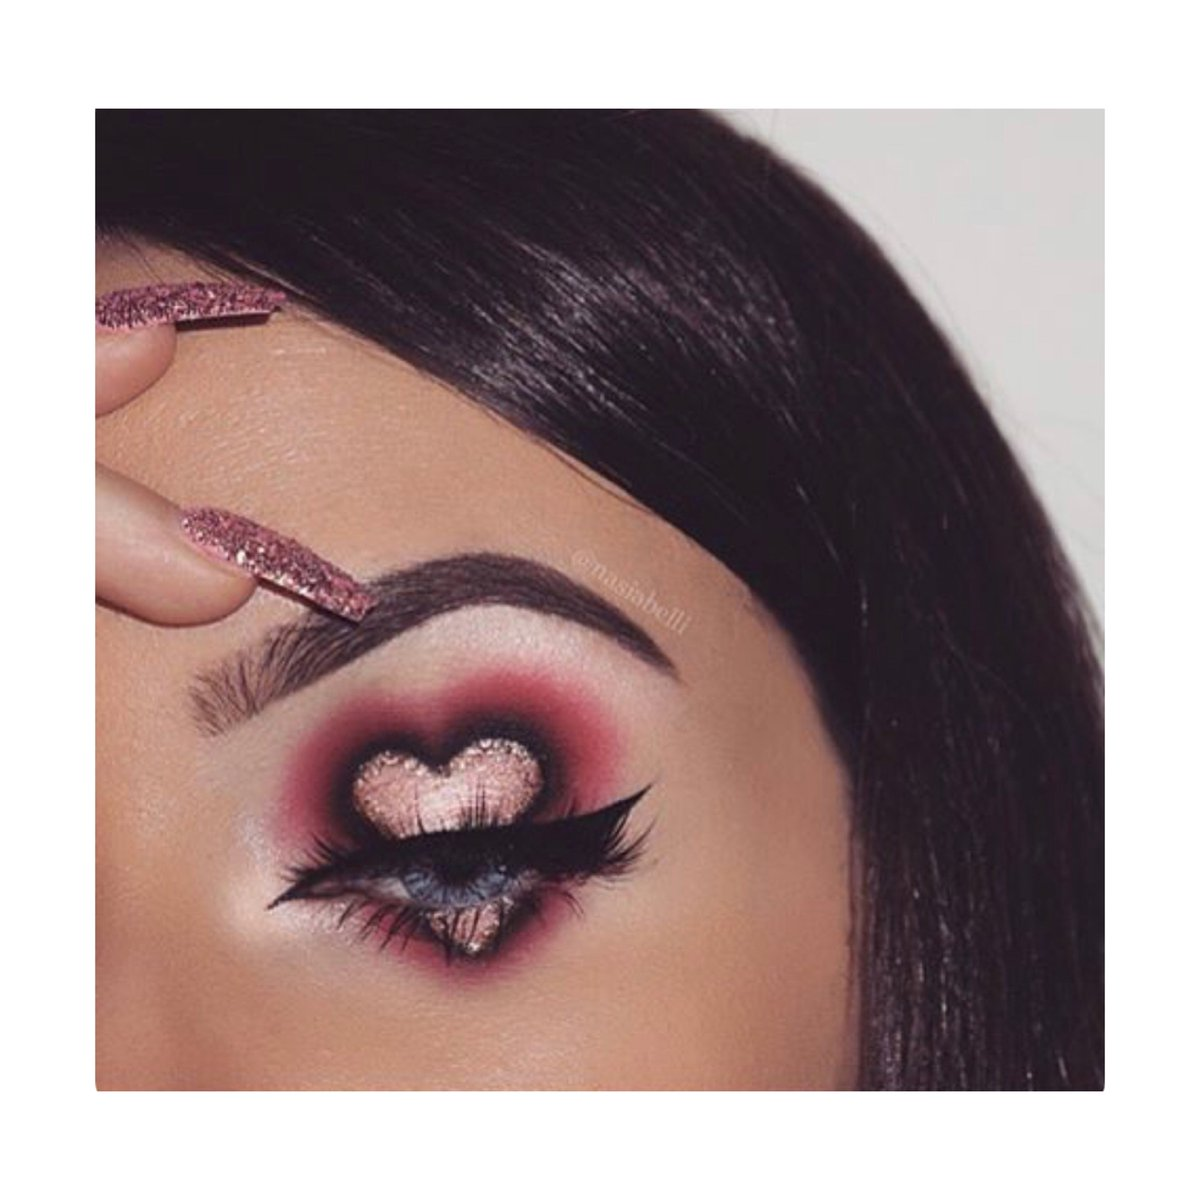 Don't wait till the weekend for date night, grab one of our Rose Edition palettes and re create @nasiabelli 's stunning look Go to  http:// kandicosmetics.co.uk     . . . #MCRmakeup #makeupinspo #palettes #colourful #love #heart #glitter #rose #blend #eyeshadow #datenight #Tuesday<br>http://pic.twitter.com/O6fZQ4ojTq